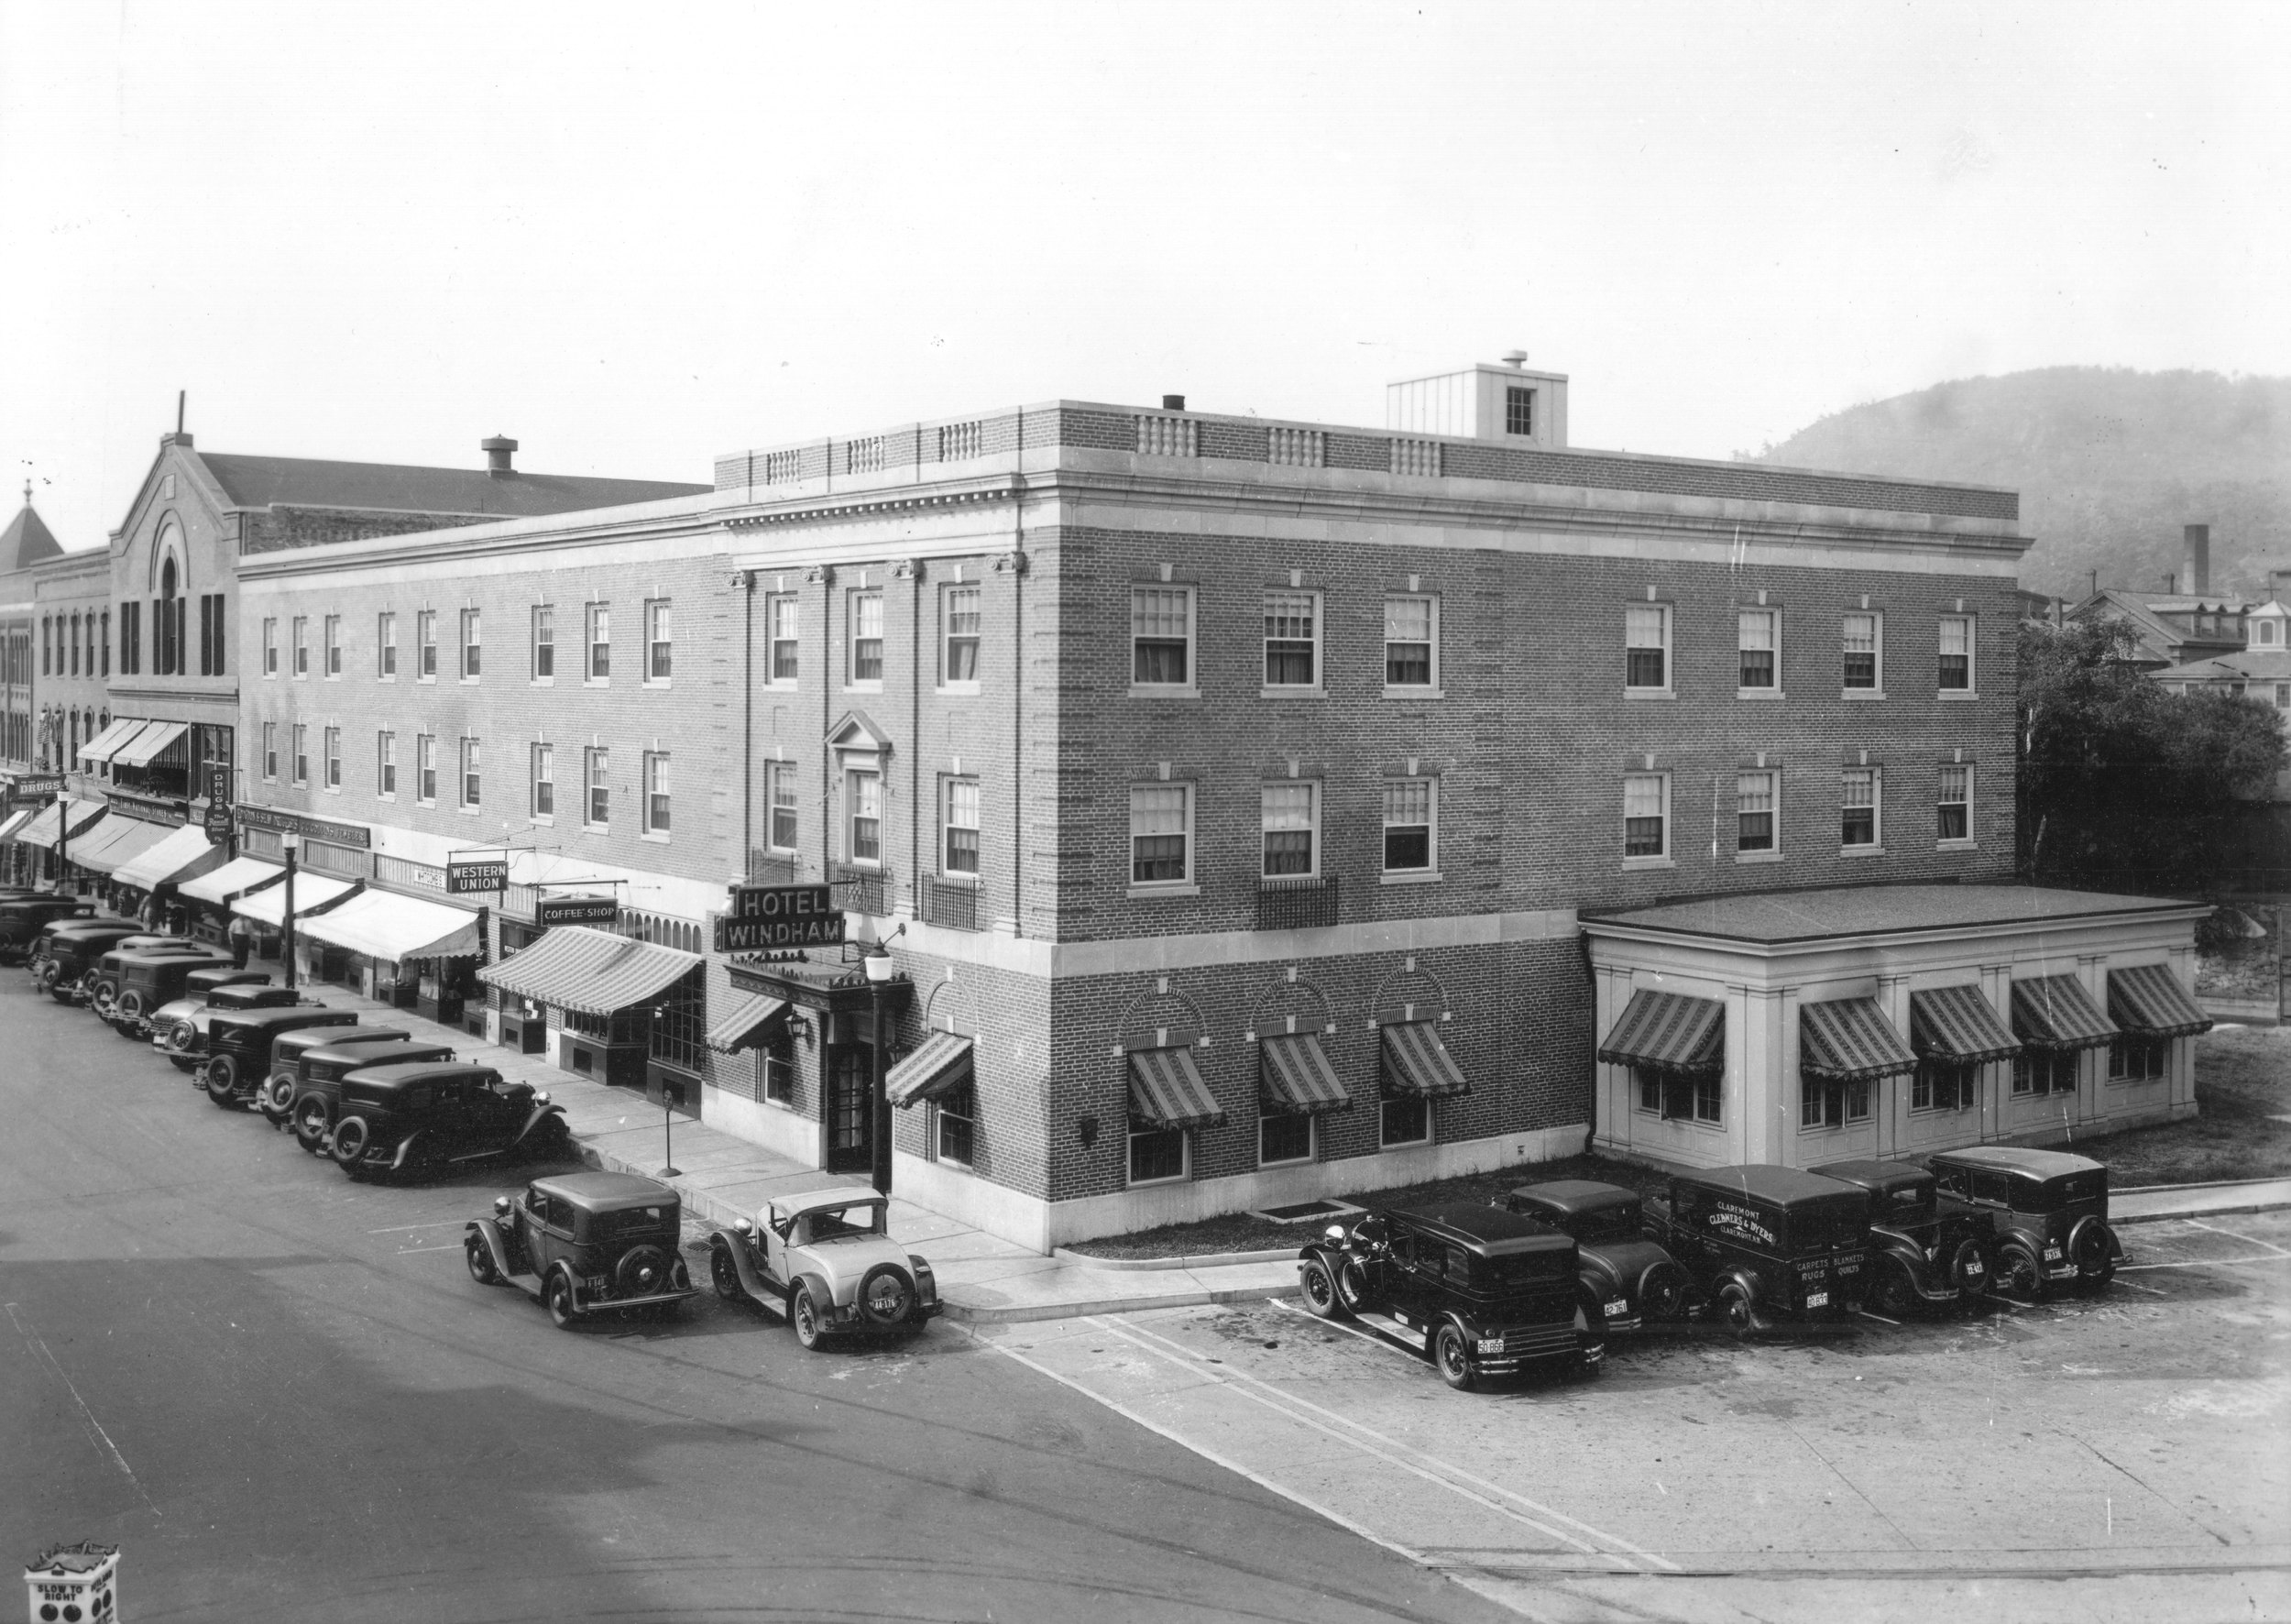 The Georgian Revival Hotel Windham as it was constructed on the original hotel site in 1933 after the great fire.